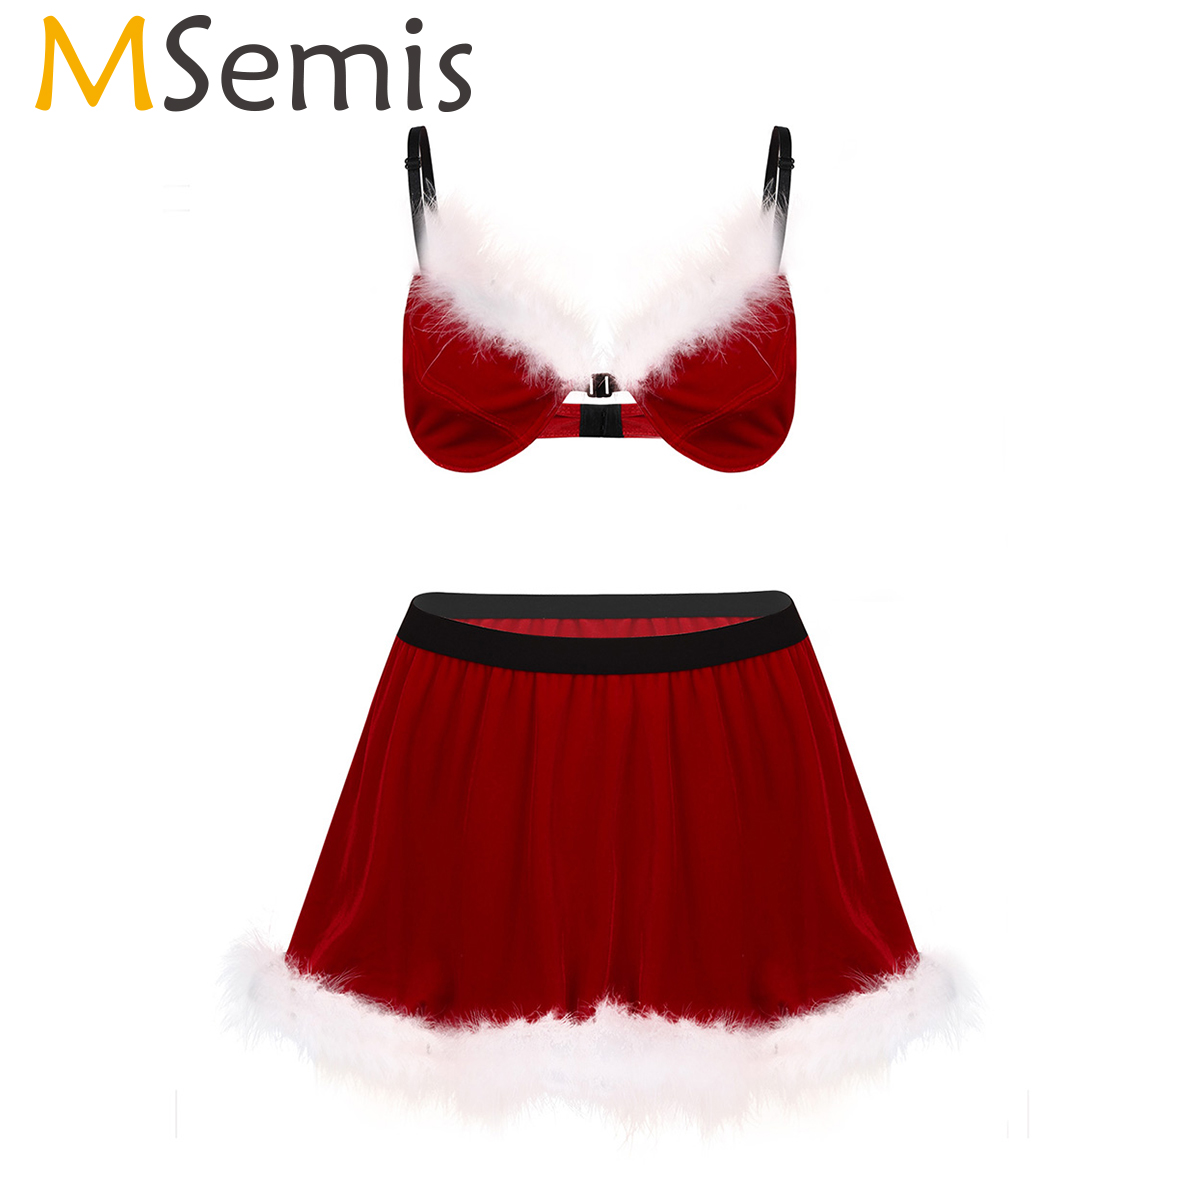 MSemis Men <font><b>Halloween</b></font> Cosplay Sissy <font><b>Sexy</b></font> Santa Christmas <font><b>Lingerie</b></font> Set Exotic Apparel Soft Velvet Feathered Bra with Mini Skirt image